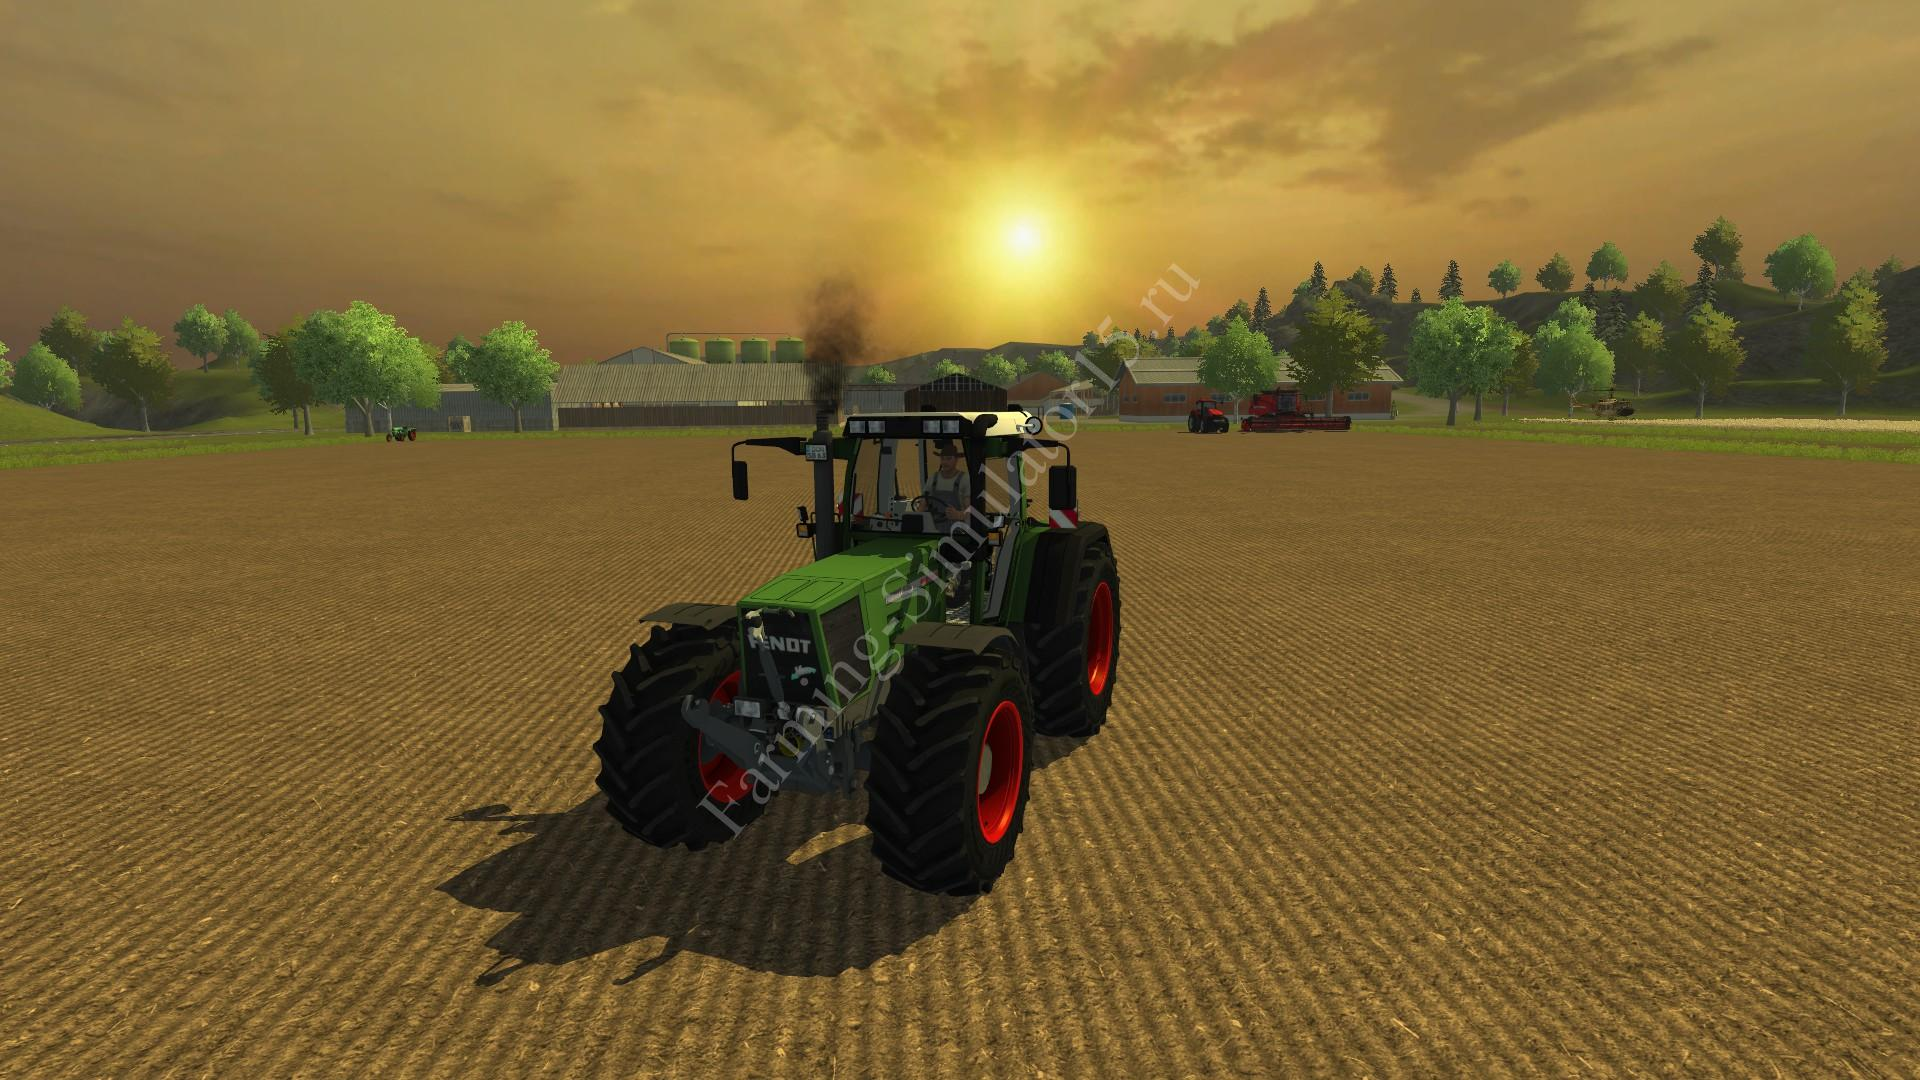 Мод трактора Fendt Favorit 926 V 3.0.1 Farming Simulator 2013, Farming Simulator 13